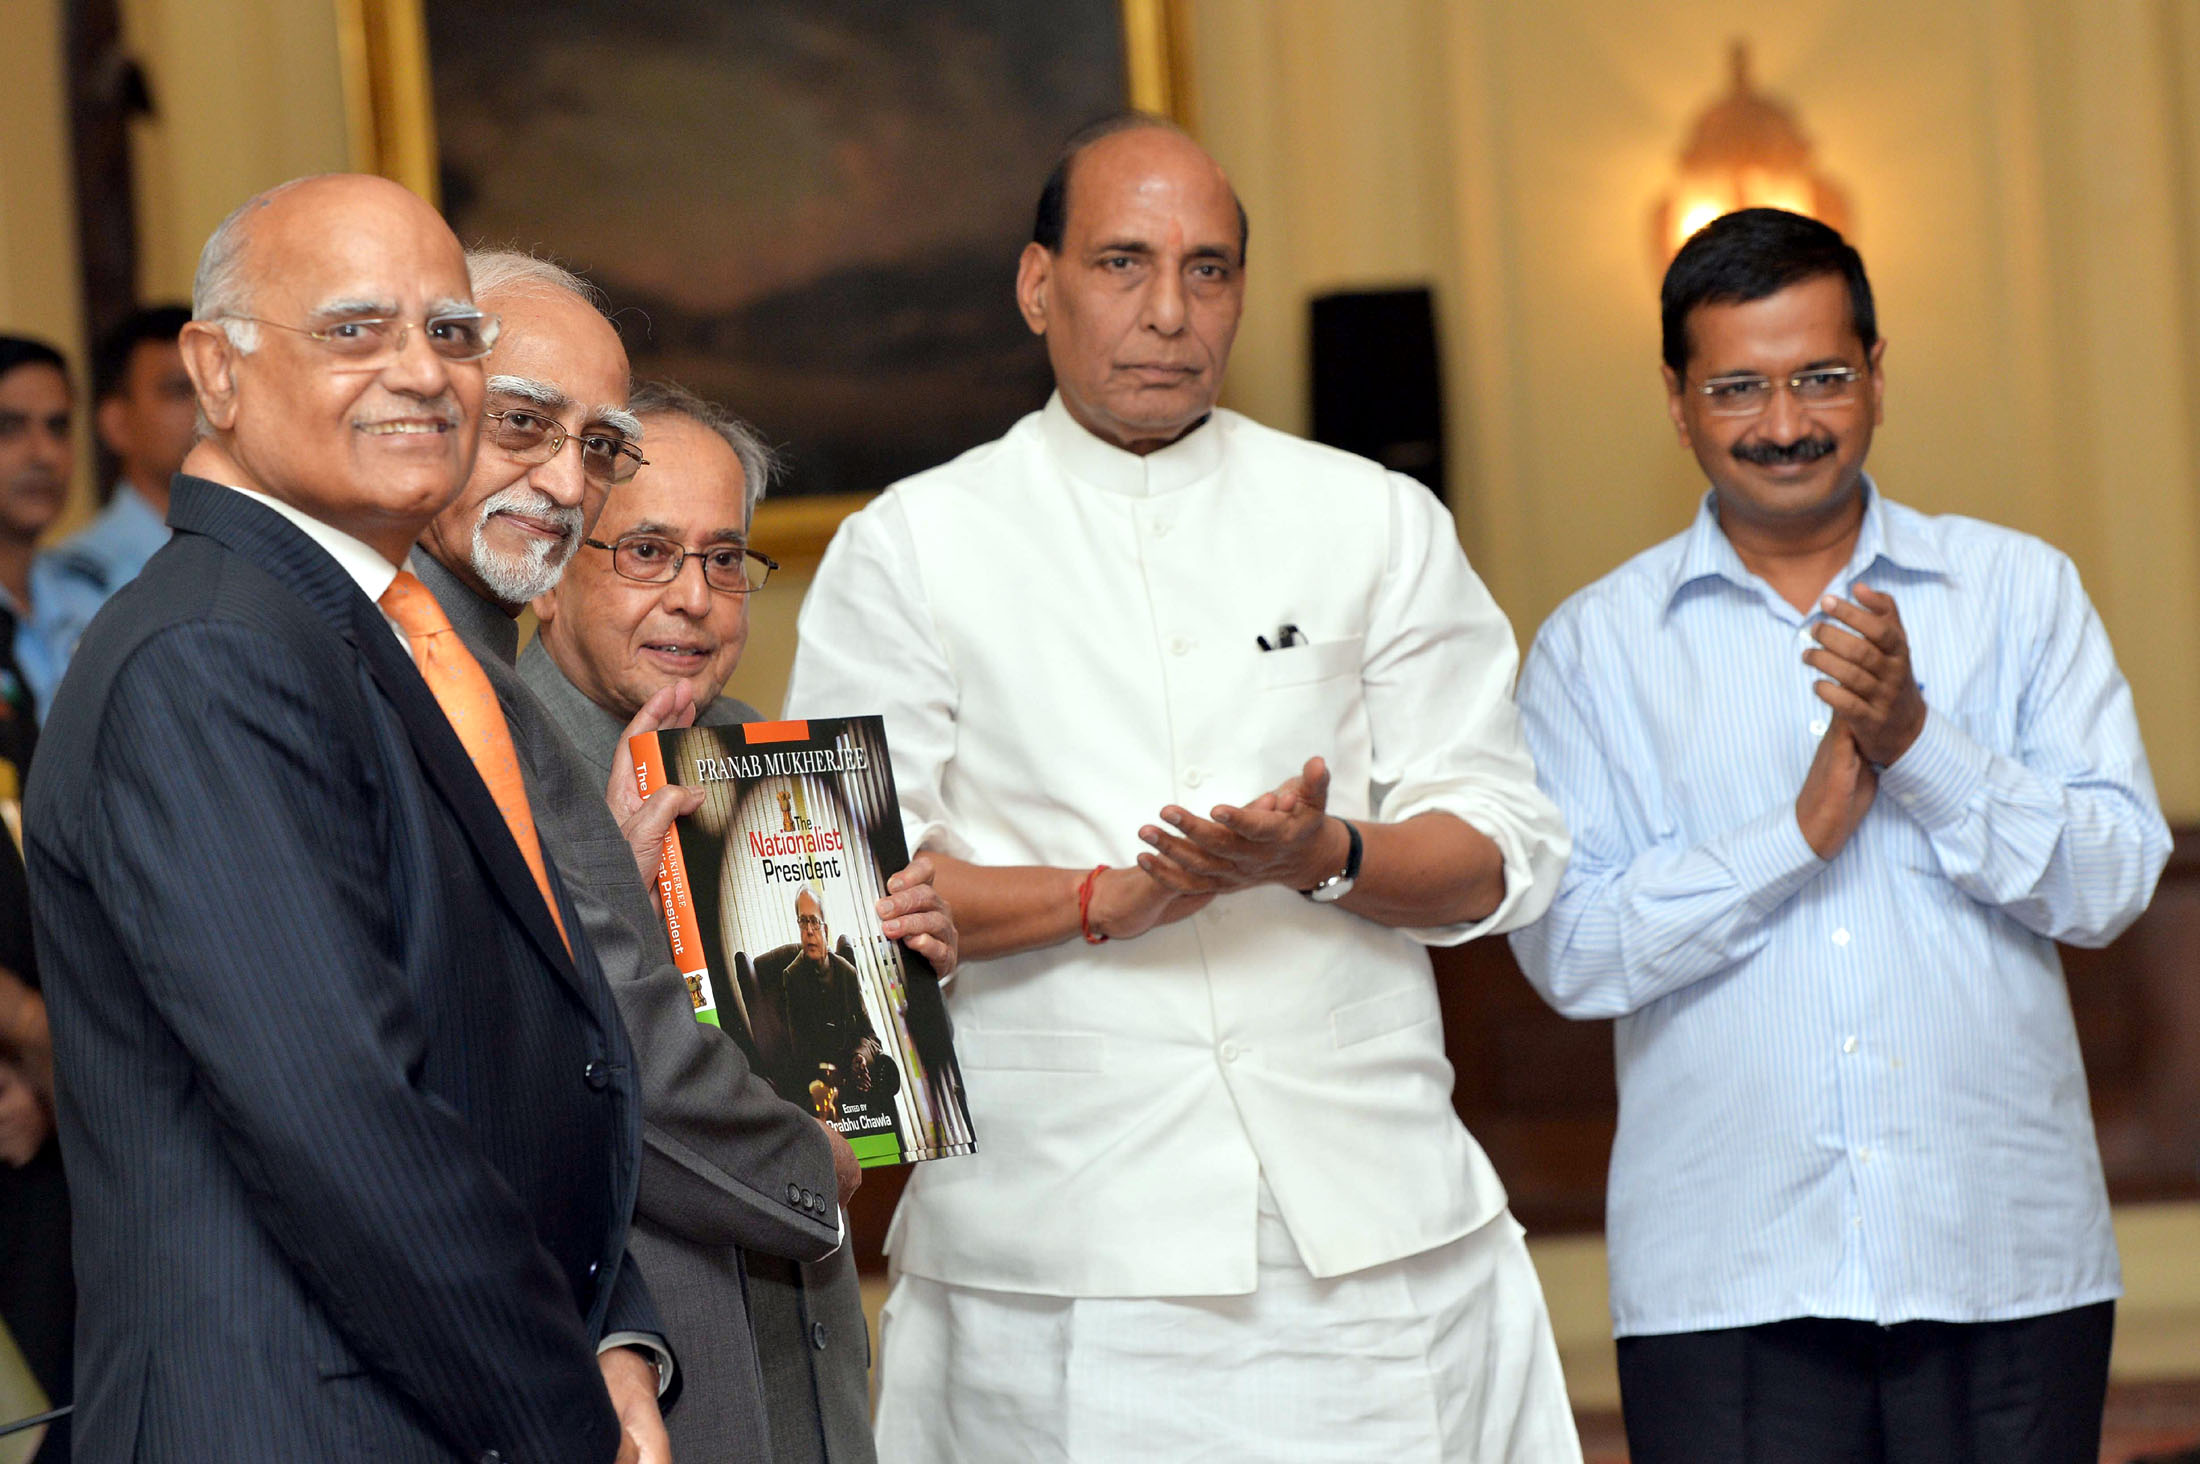 The President, Shri Pranab Mukherjee receiving the first copy of the Coffee Table Book 'The Nationalist President Pranab Mukherjee', edited by Shri Prabhu Chawla, from the Vice President, Shri Mohd. Hamid Ansari, at Rashtrapati Bhavan, in New Delhi on October 07, 2015. The Union Home Minister, Shri Rajnath Singh and the Chief Minister of Delhi, Shri Arvind Kejriwal are also seen.